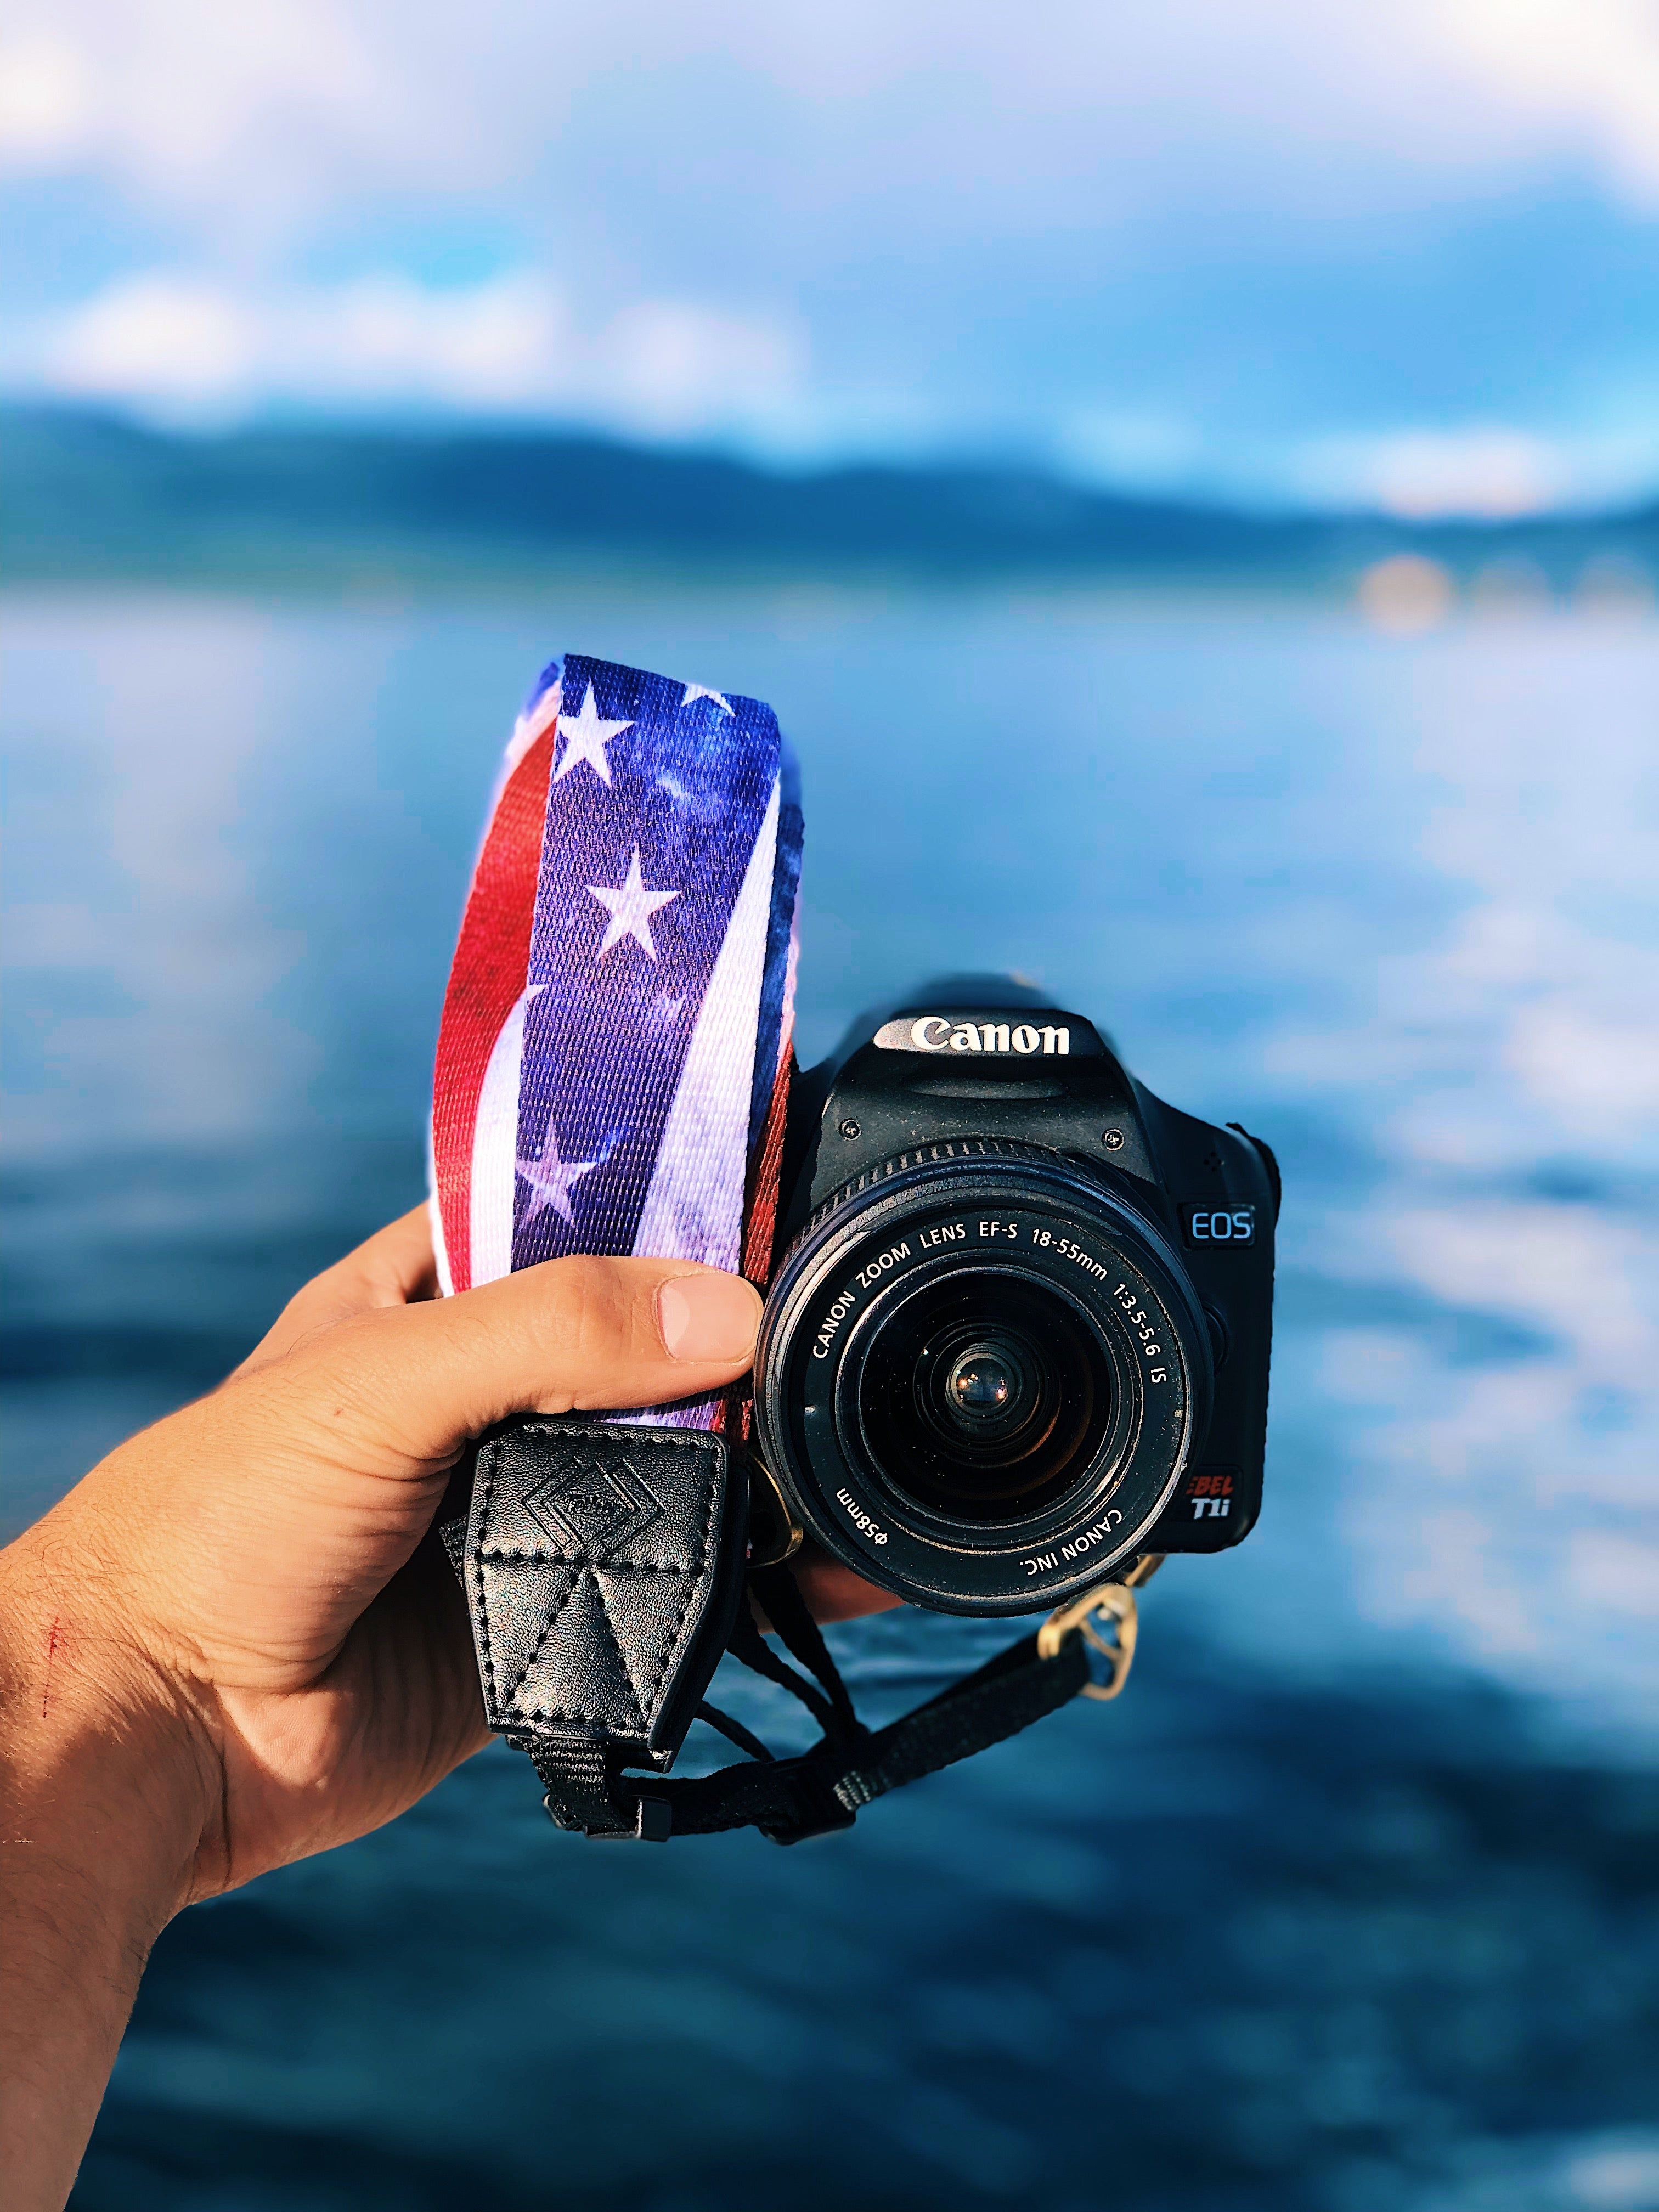 camera strap, camera wrist strap, sunglass straps, outdoor gear, camera equipment, celebrate the 4th of July, where to watch fireworks, best firework shows,